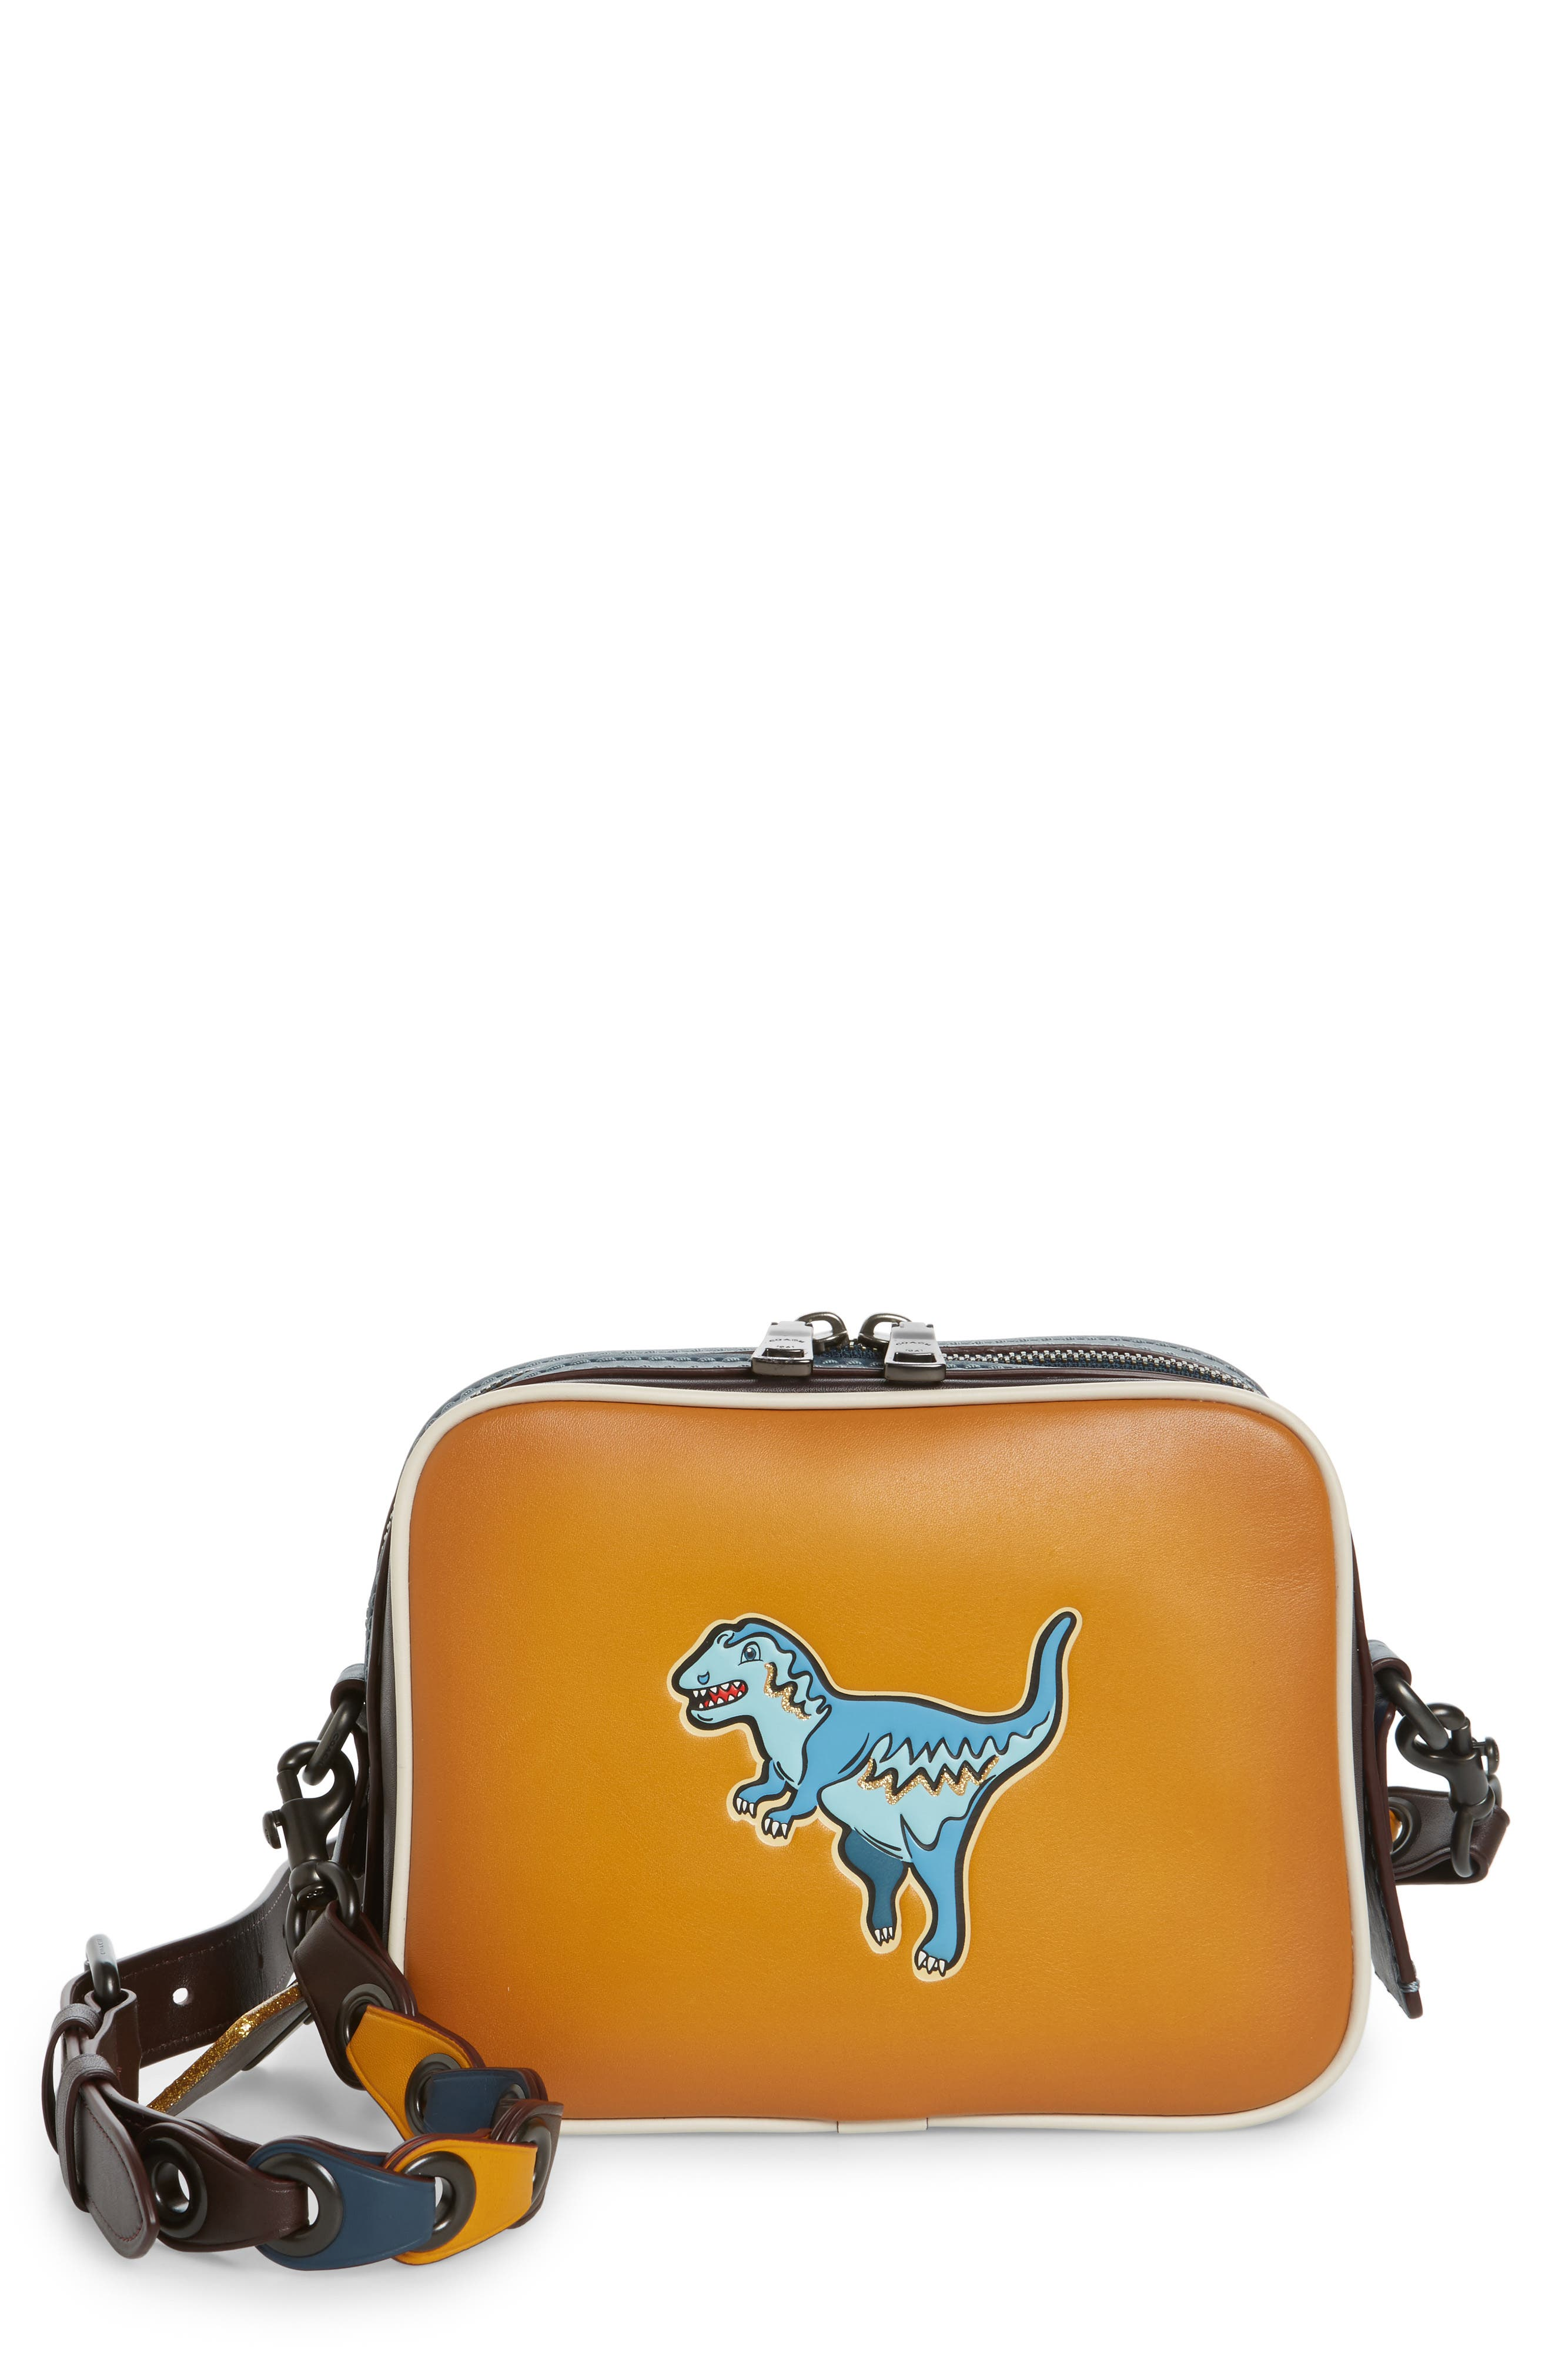 Rexy Leather Crossbody Bag,                         Main,                         color, 720